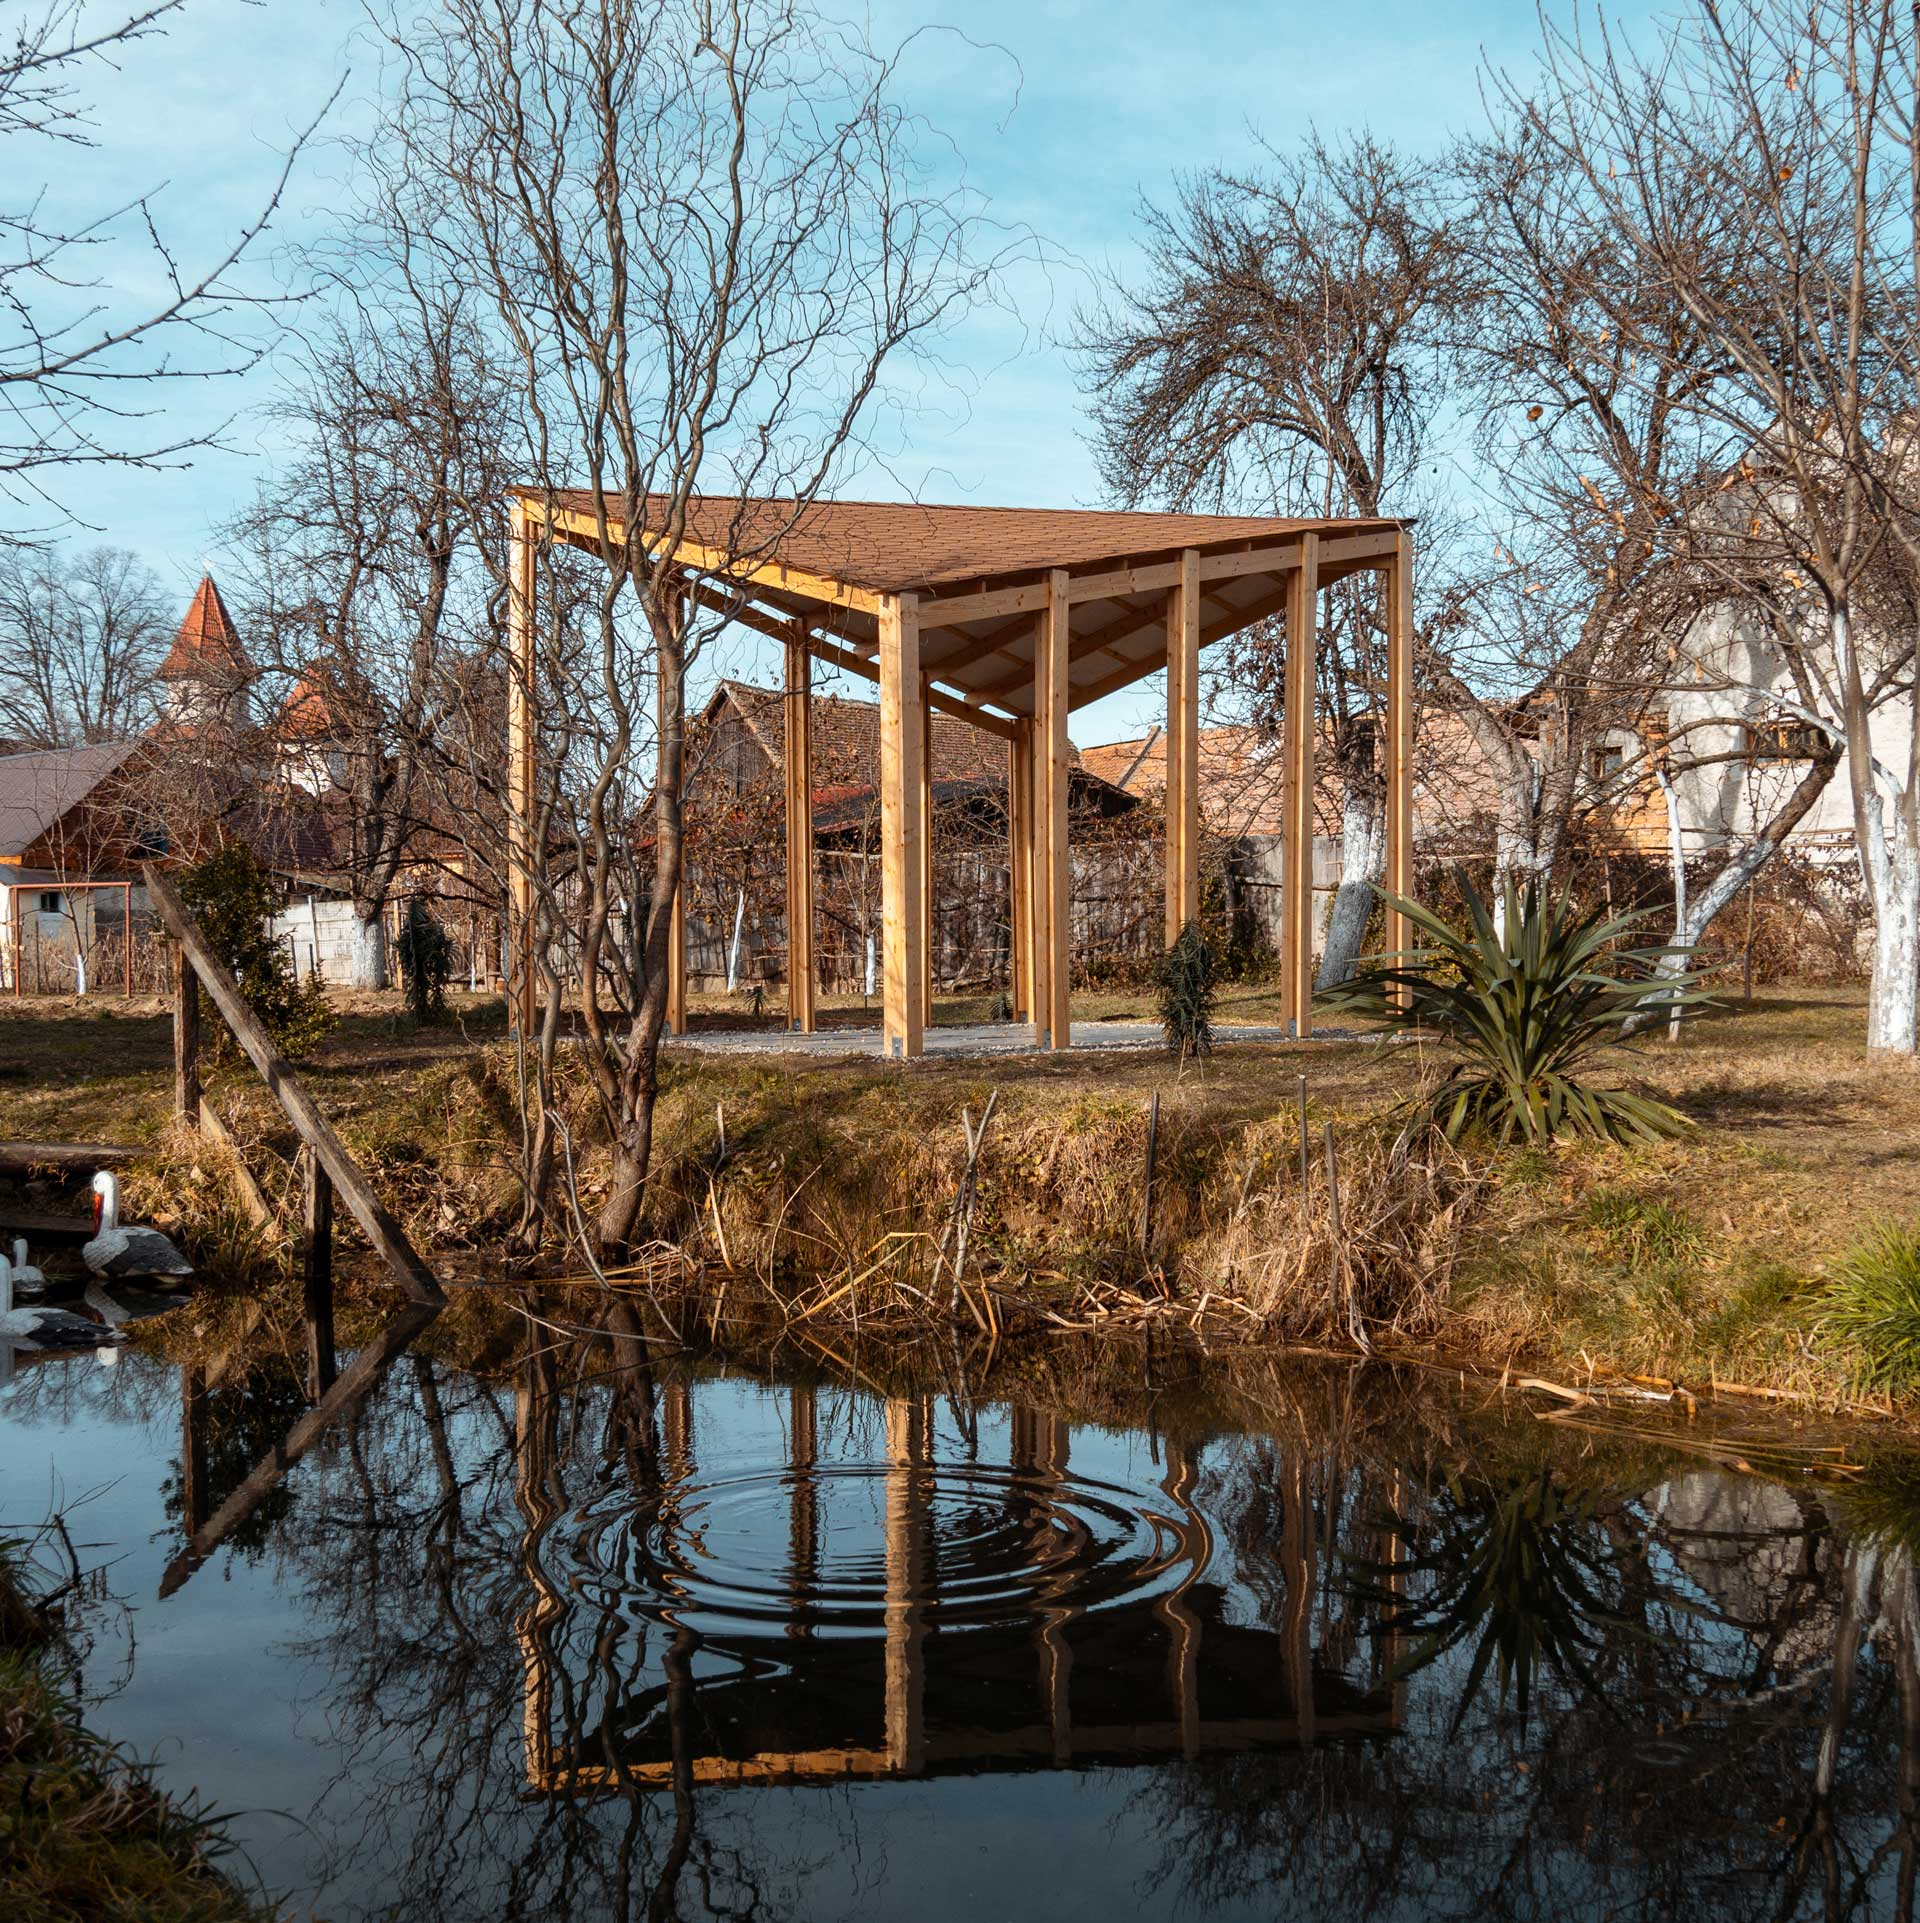 The wood pavilion reflected in our small pond in the backyard. In the background the village's church is visible through the trees..